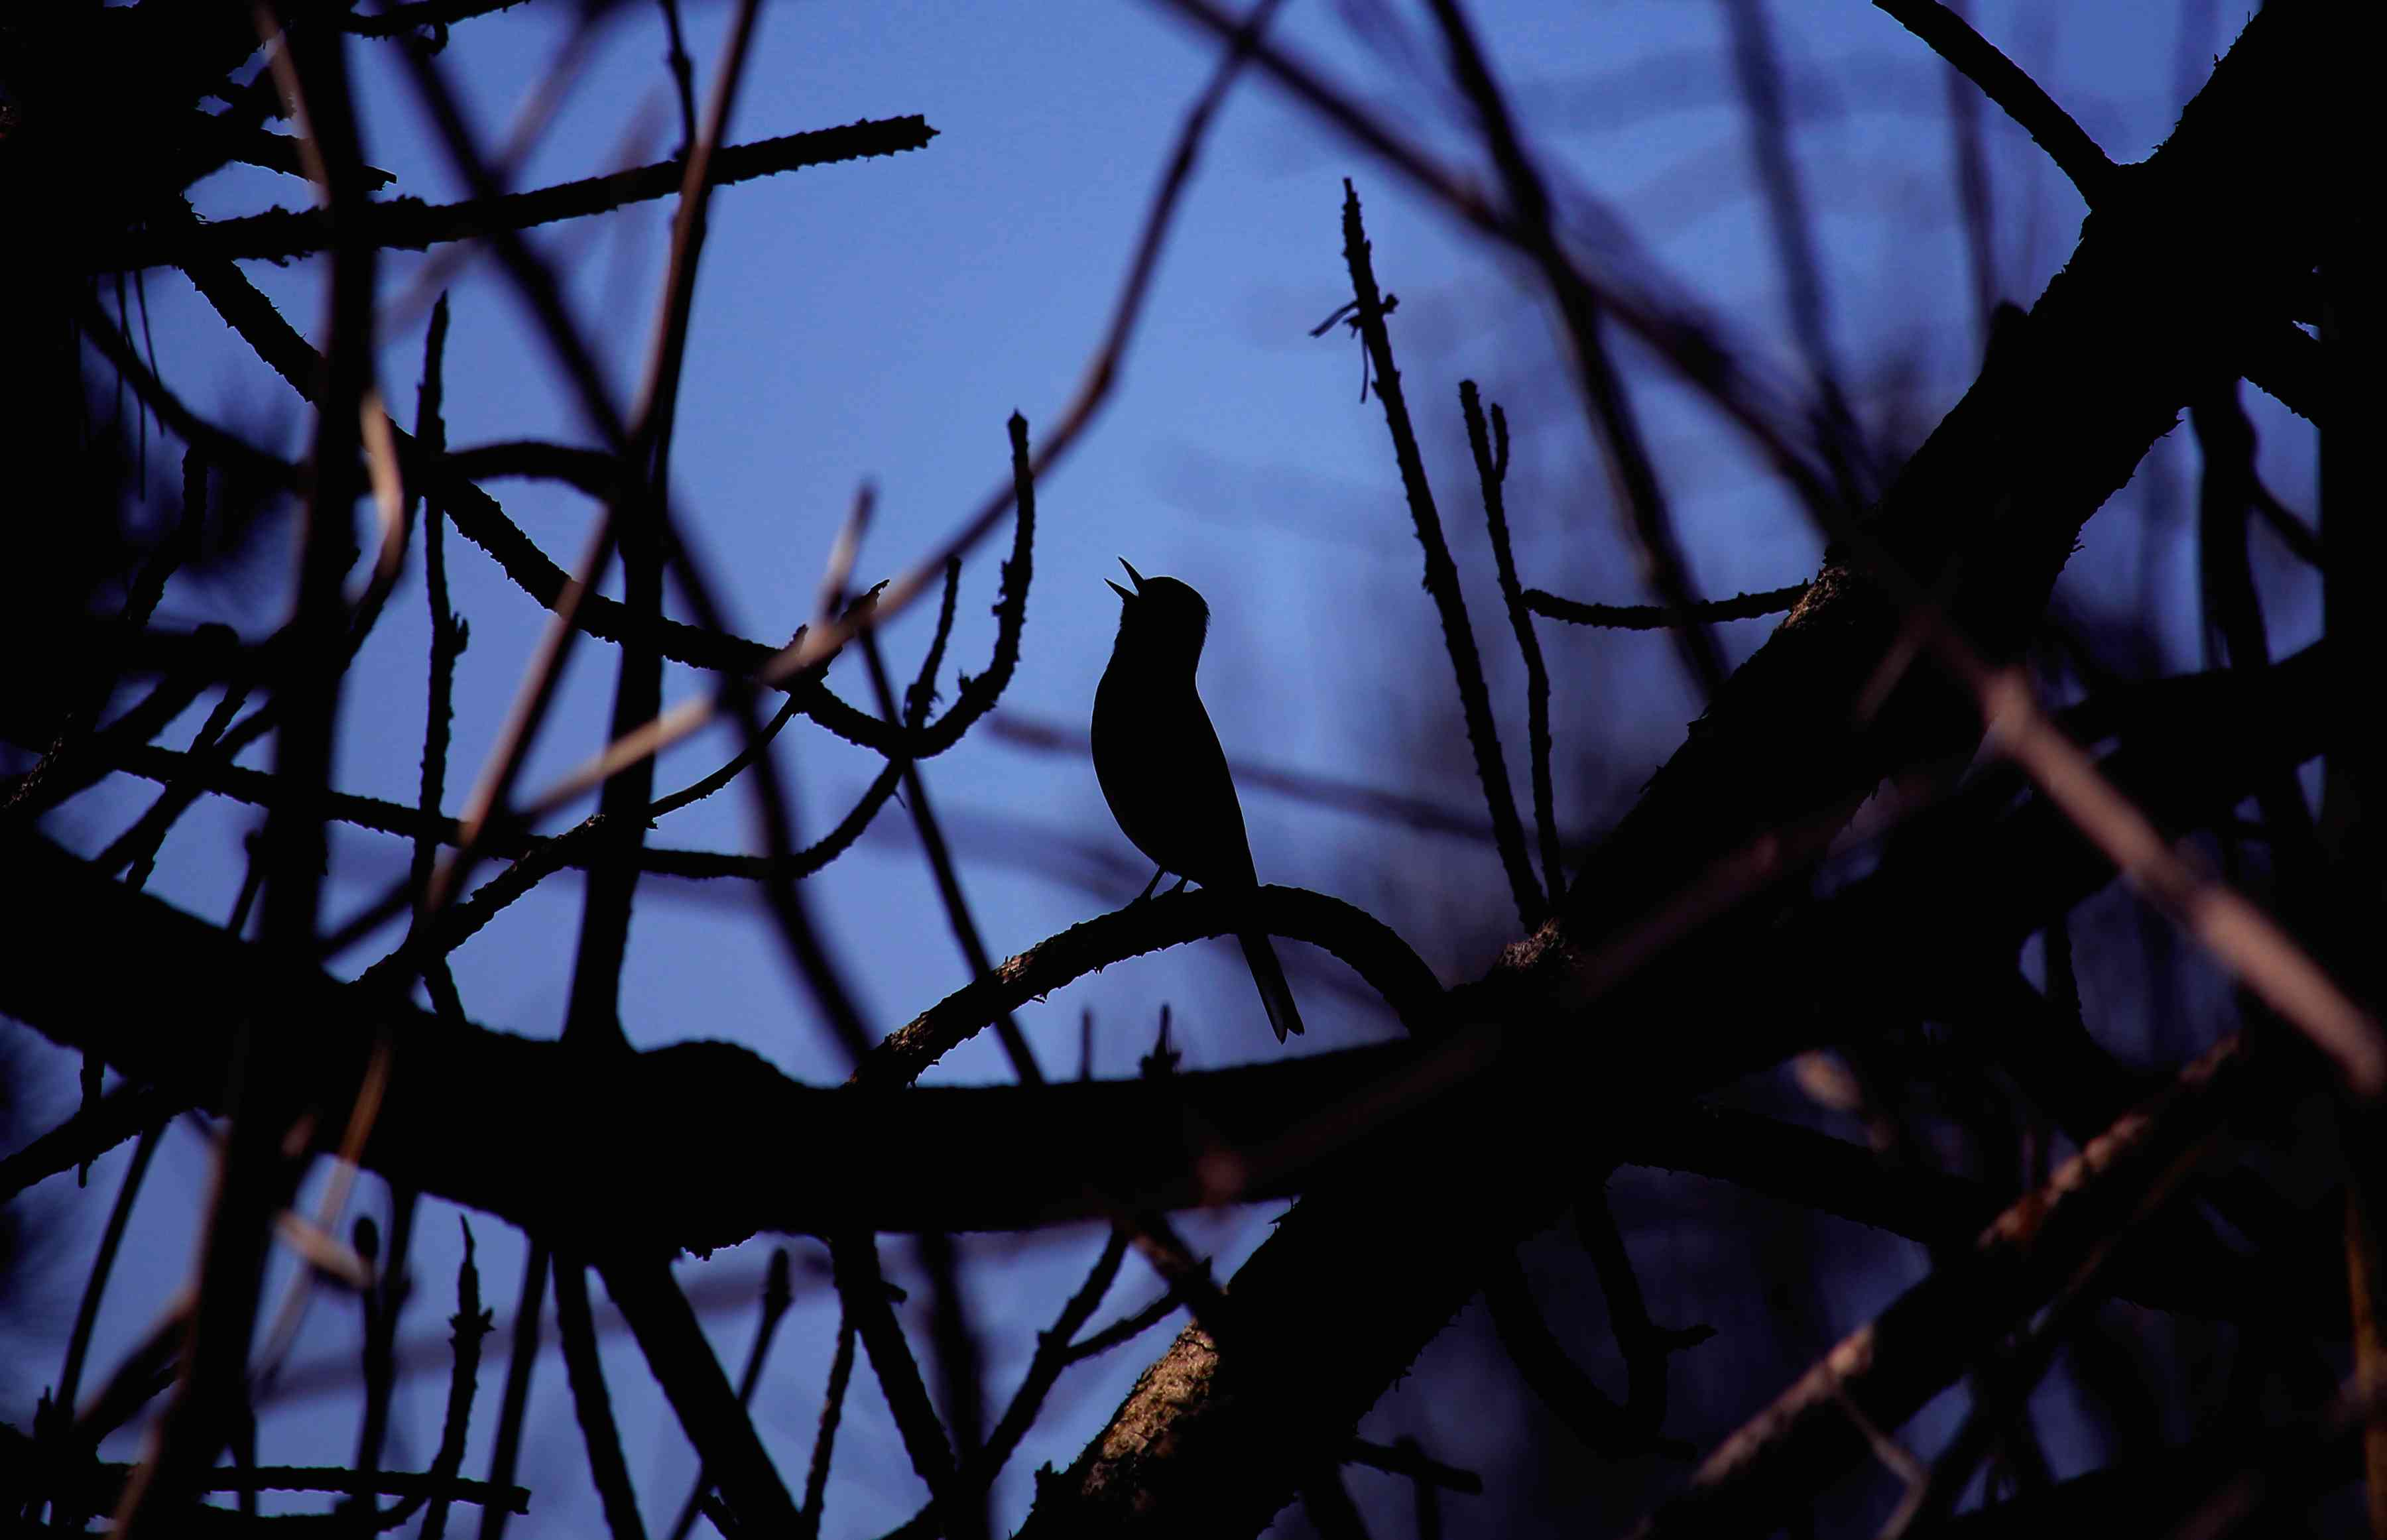 Silhouette of a nightingale singing while perched on a branch